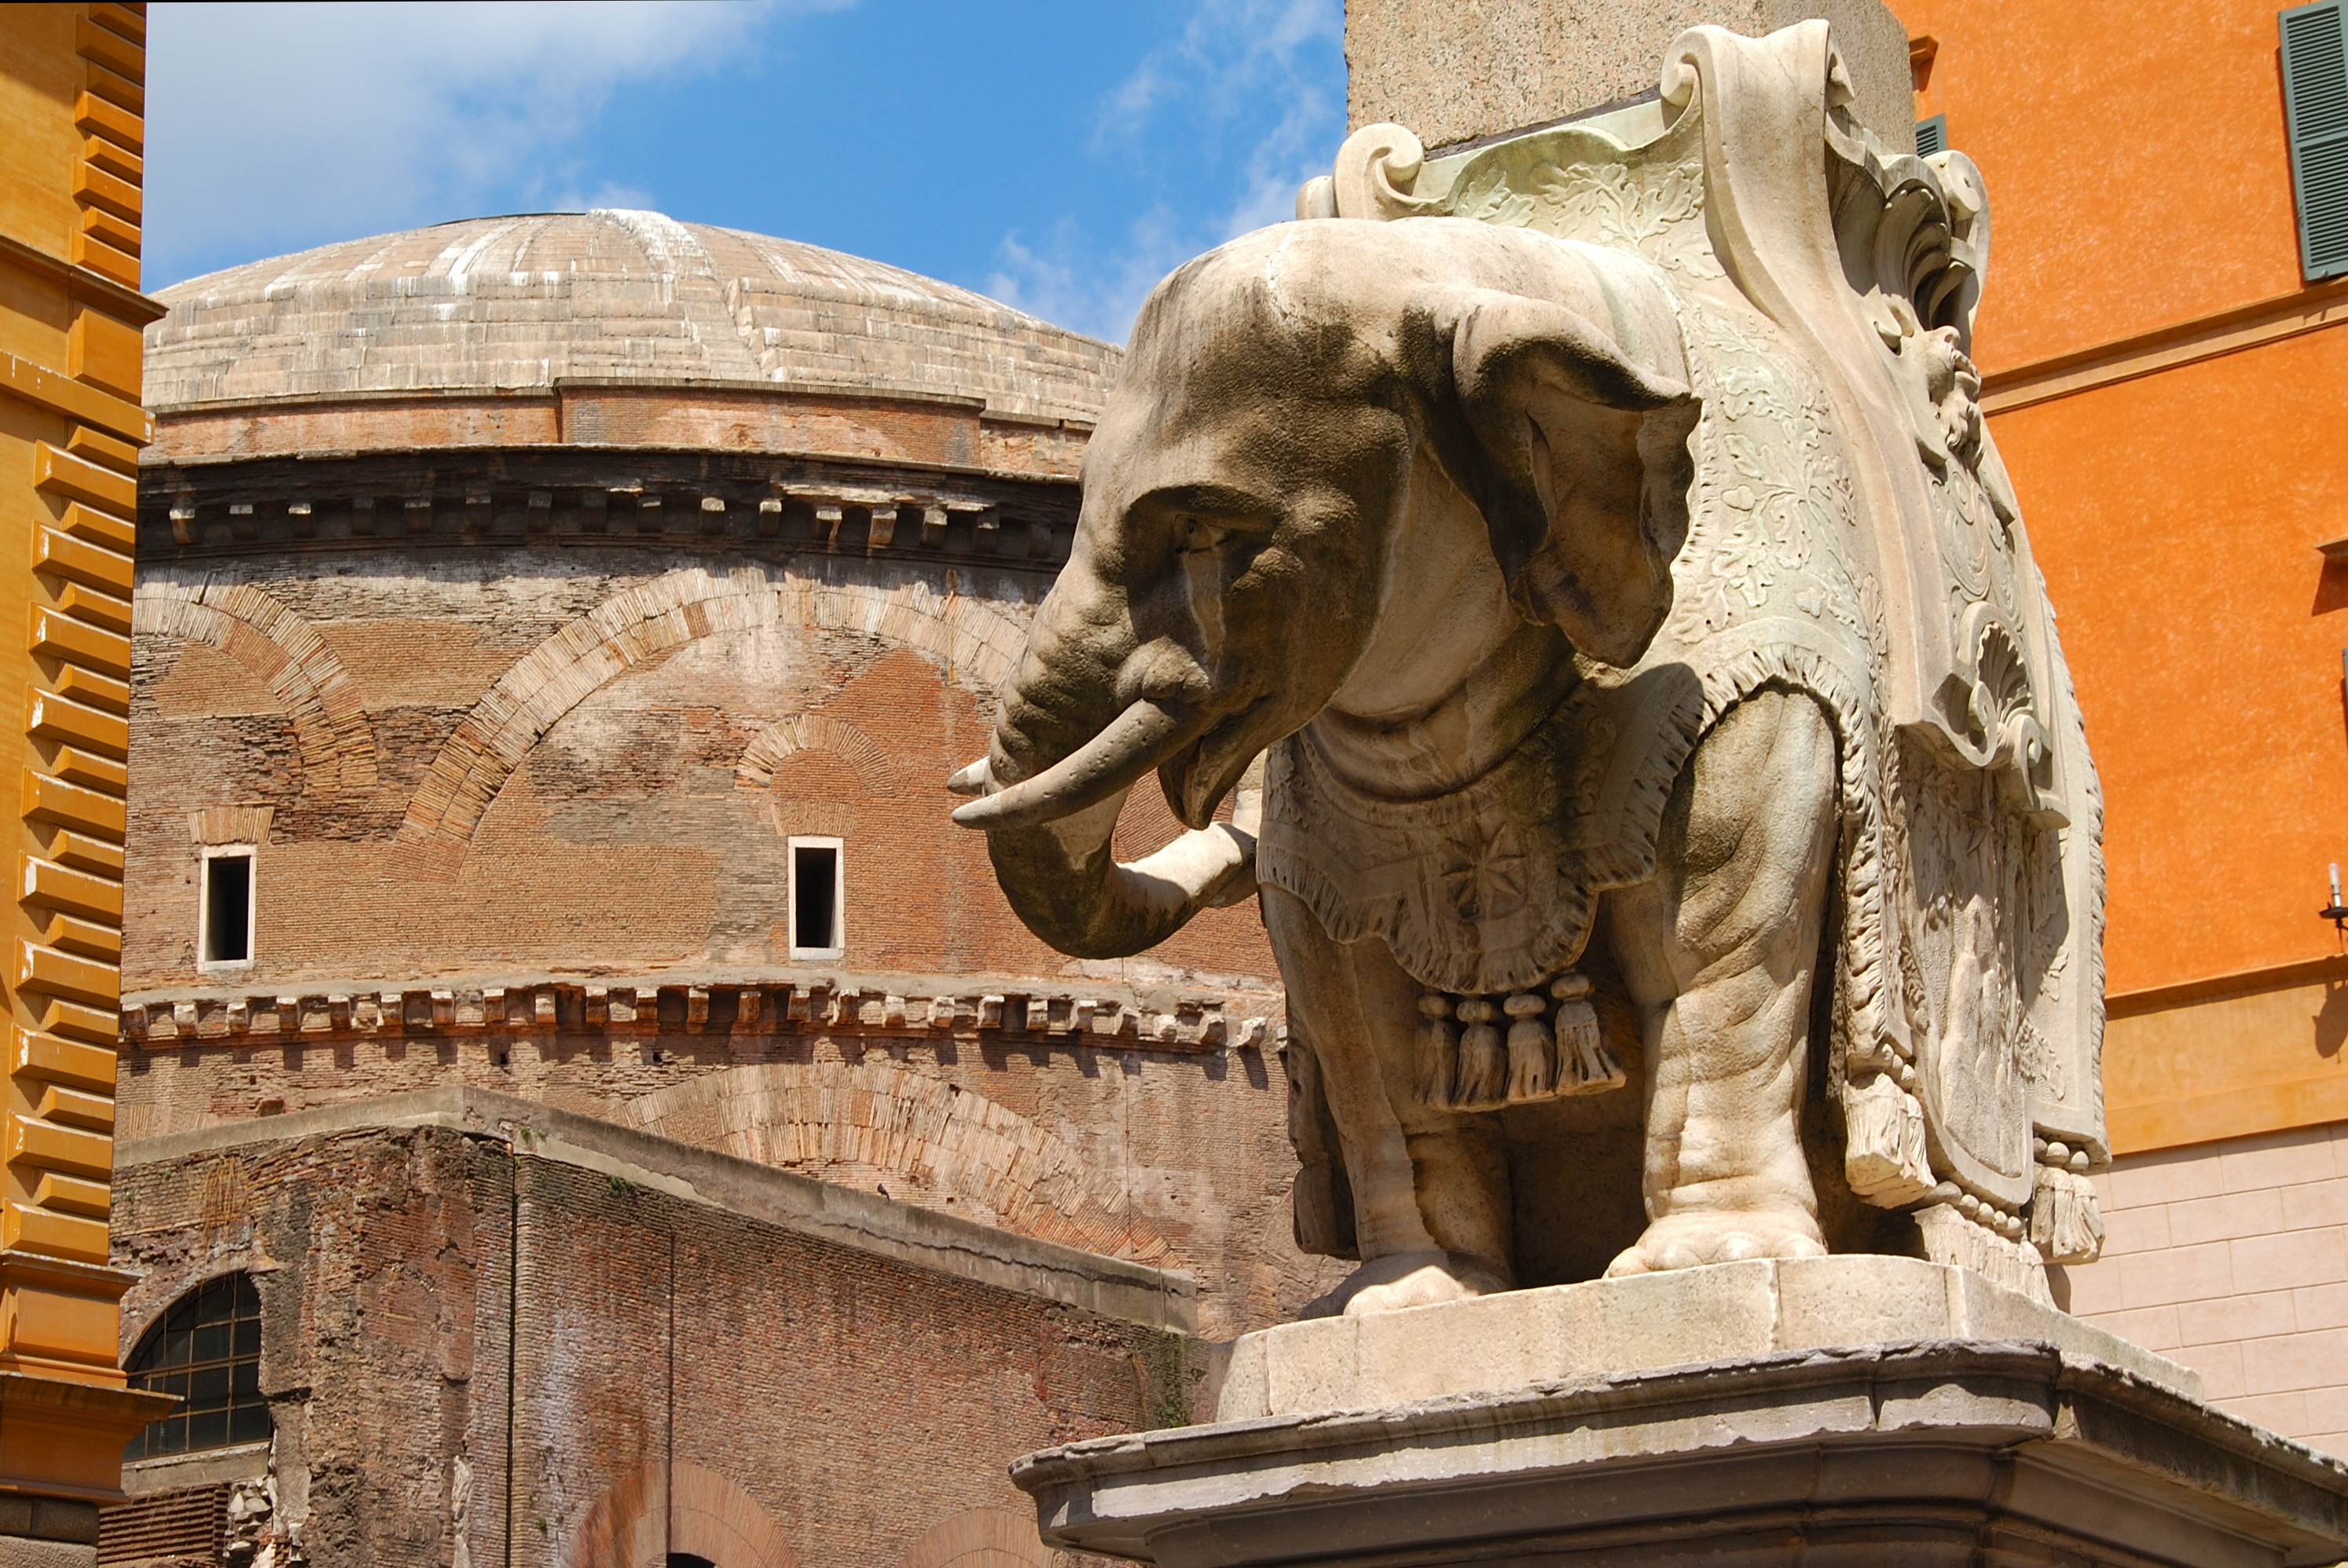 Photo of Bernini's sculpture of an elephant, in Piazza Minerva, Rome, with the Pantheon on the background.